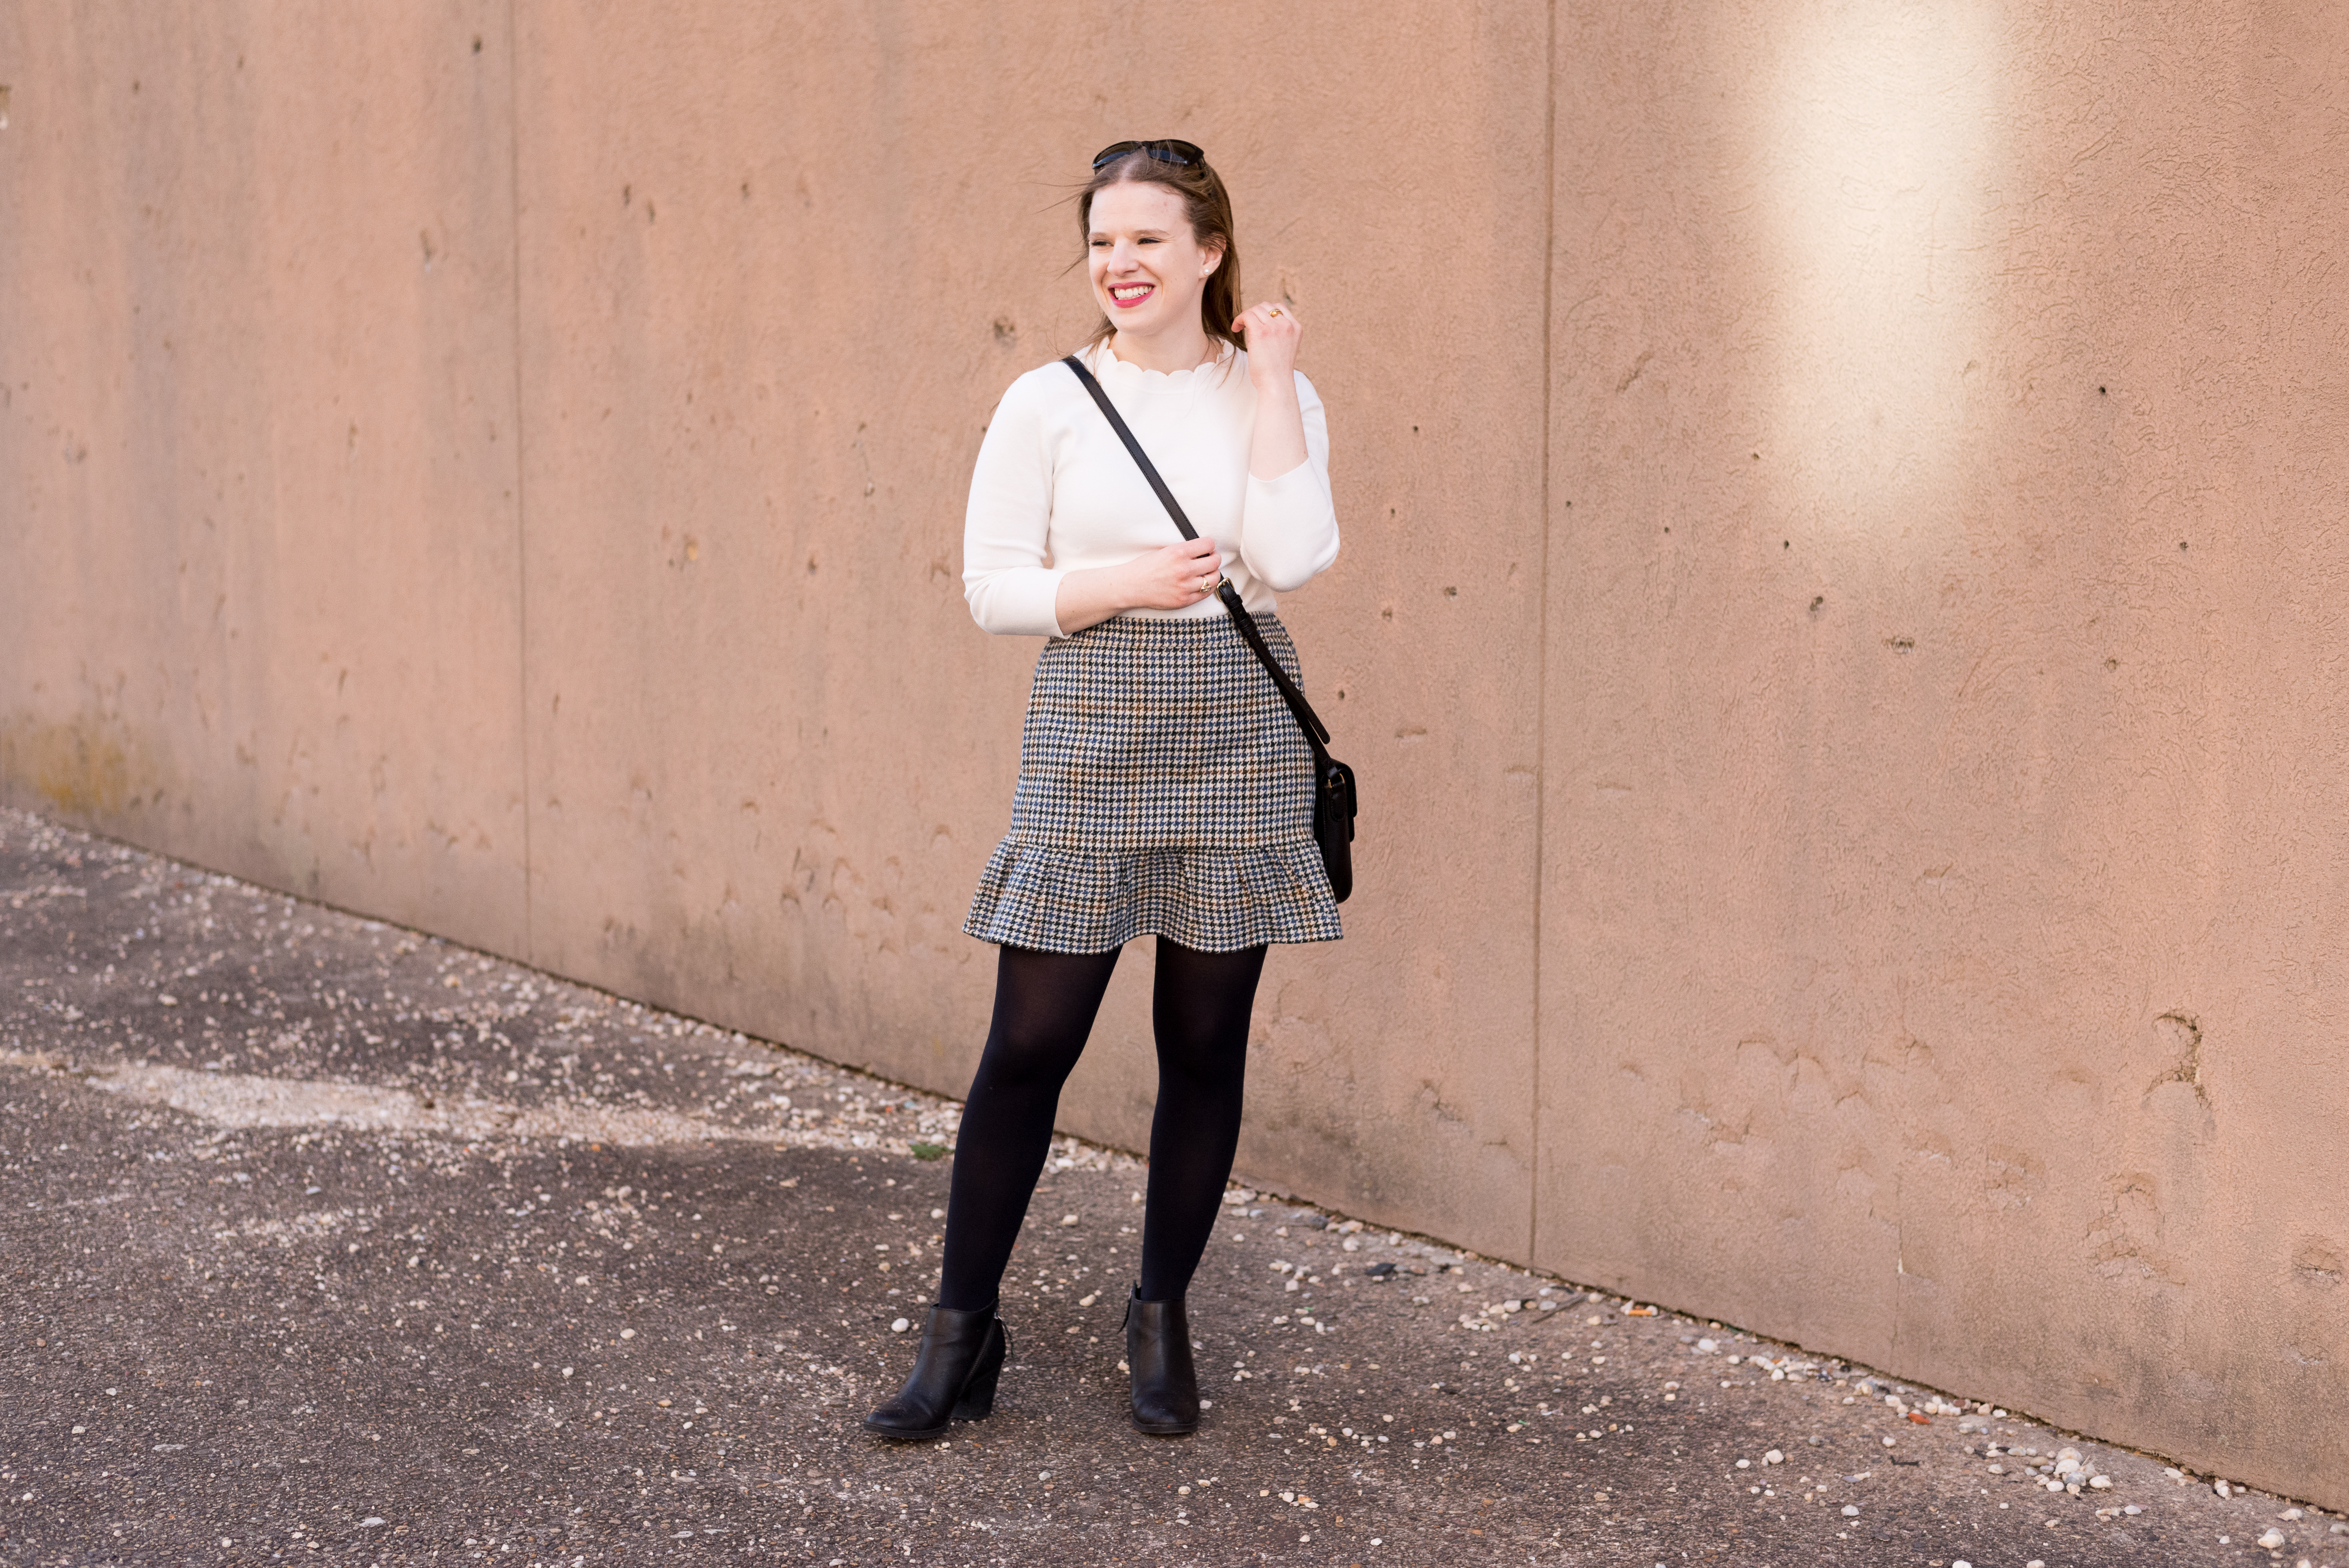 The Perfect Work Outfit for Weird Winter Weather   Something Good, @danaerinw , j.crew ruffle mini skirt, houndstooth skirt, j.crew skirt, women's fashion, clothing, style, ankle boots, white sweater